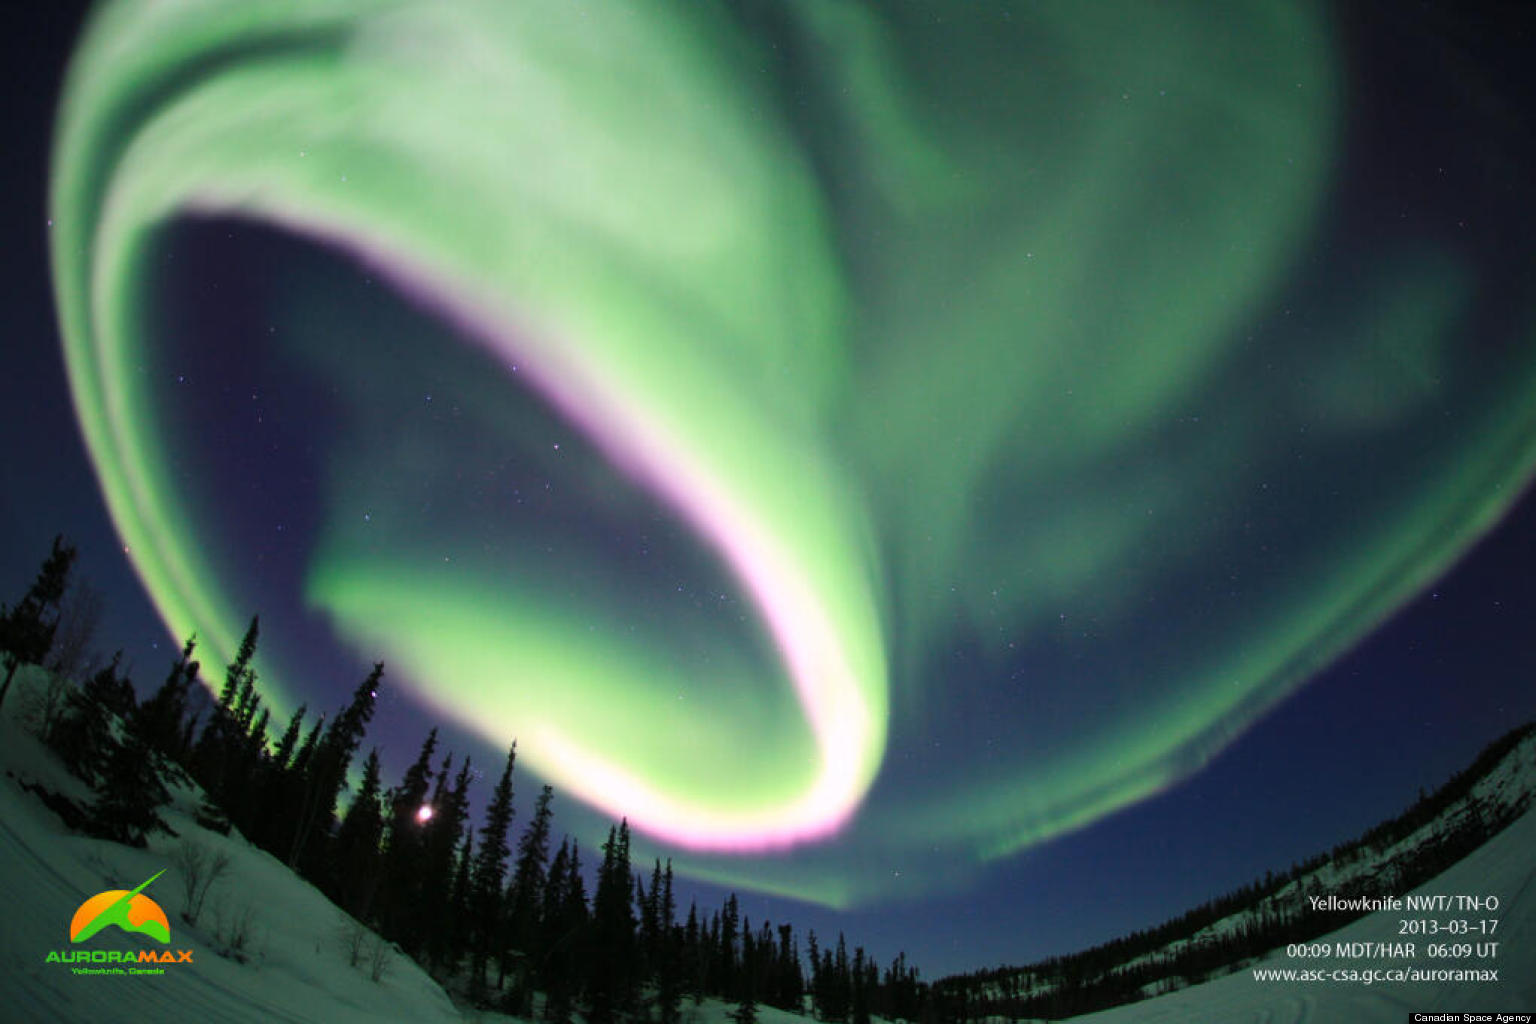 LOOK: Amazing Aurora Photos